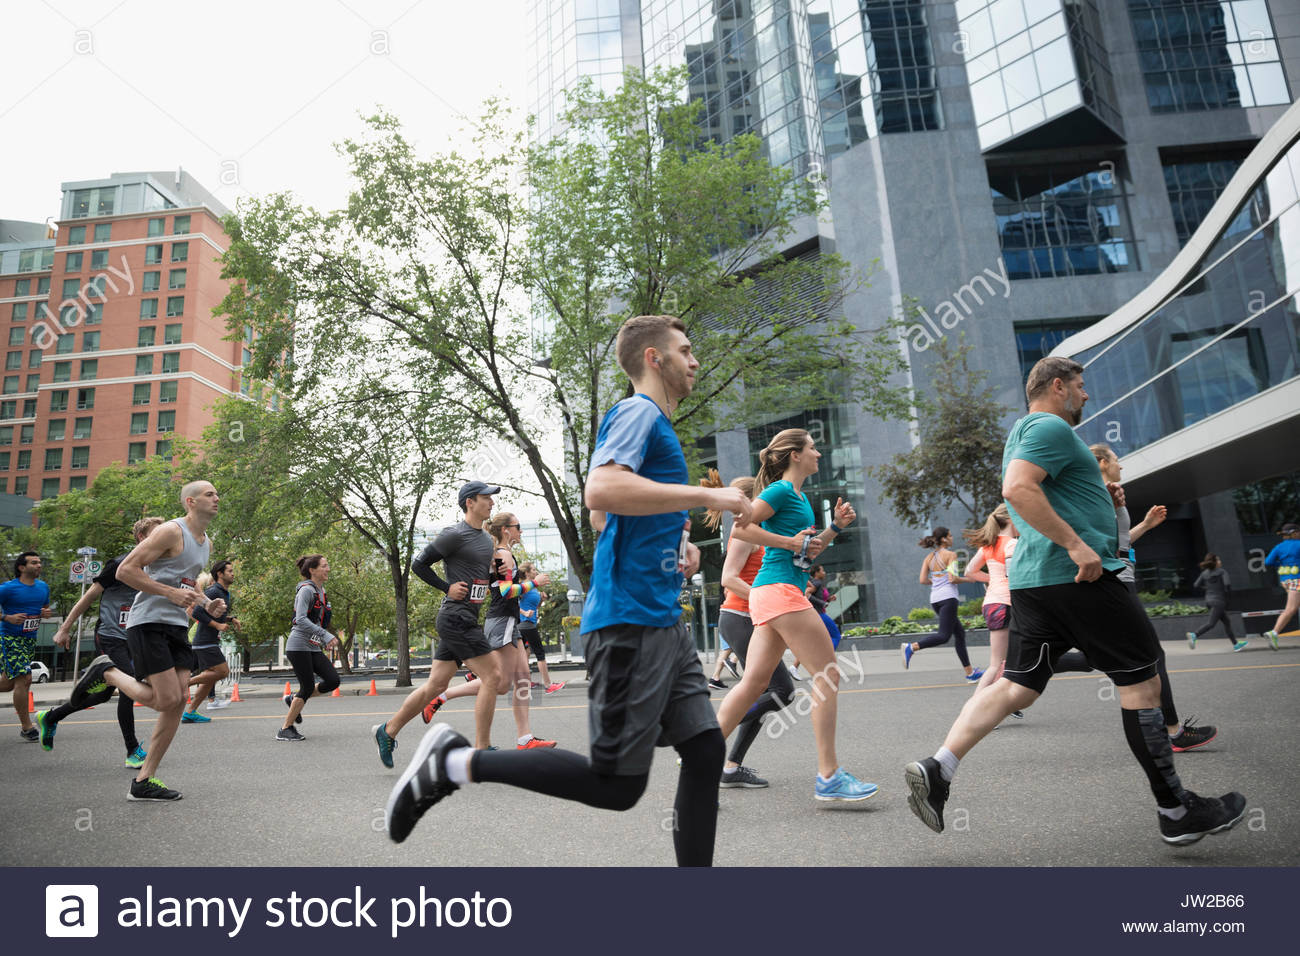 Marathon runners running on urban street - Stock Image